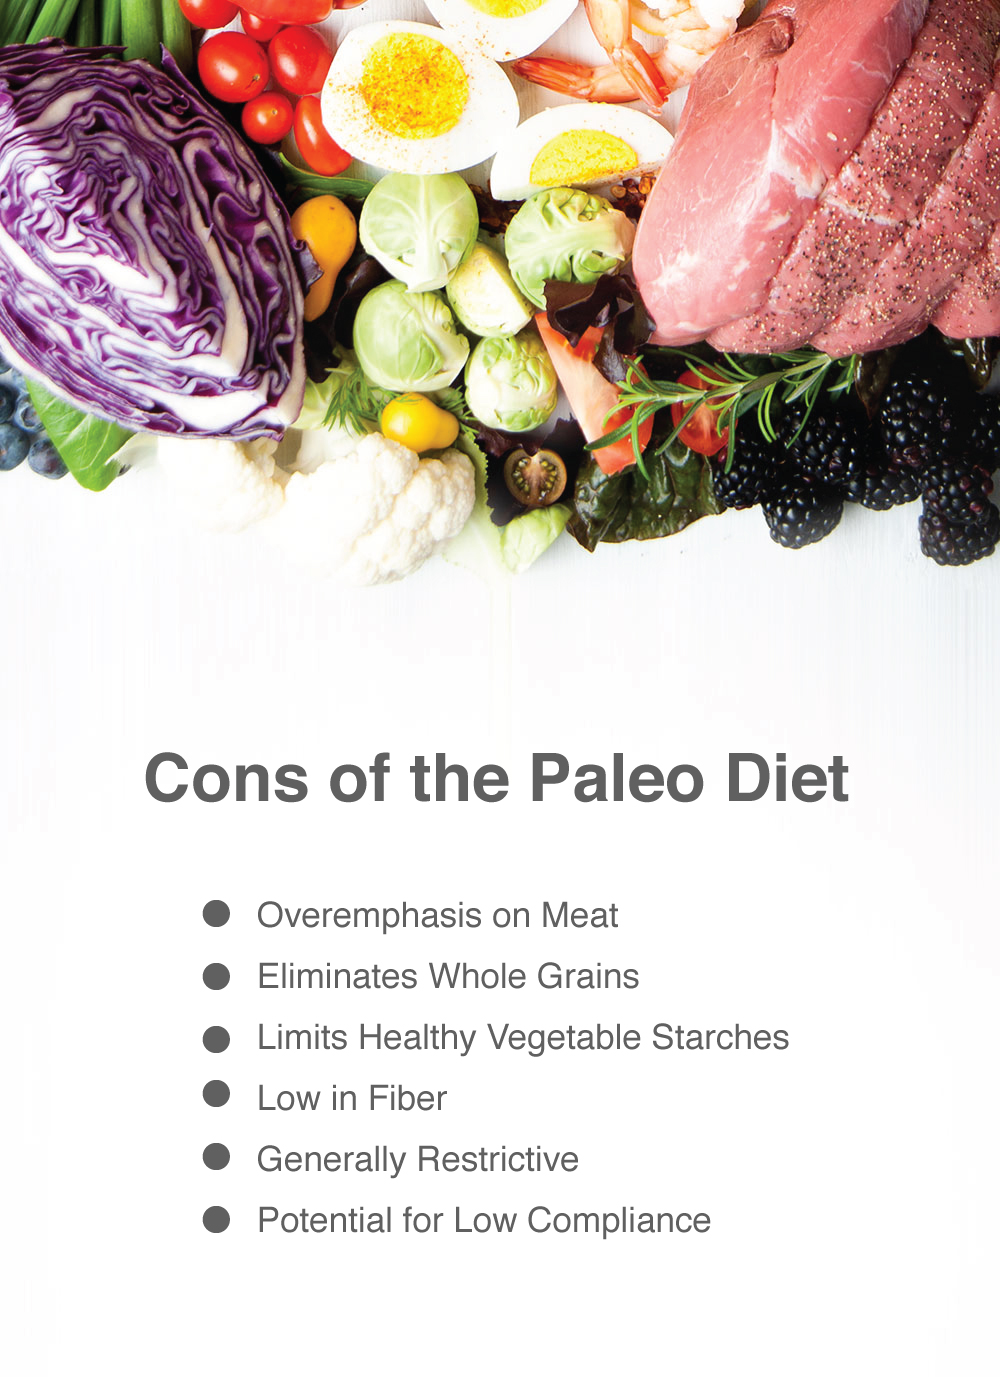 Cons of the Paleo Diet